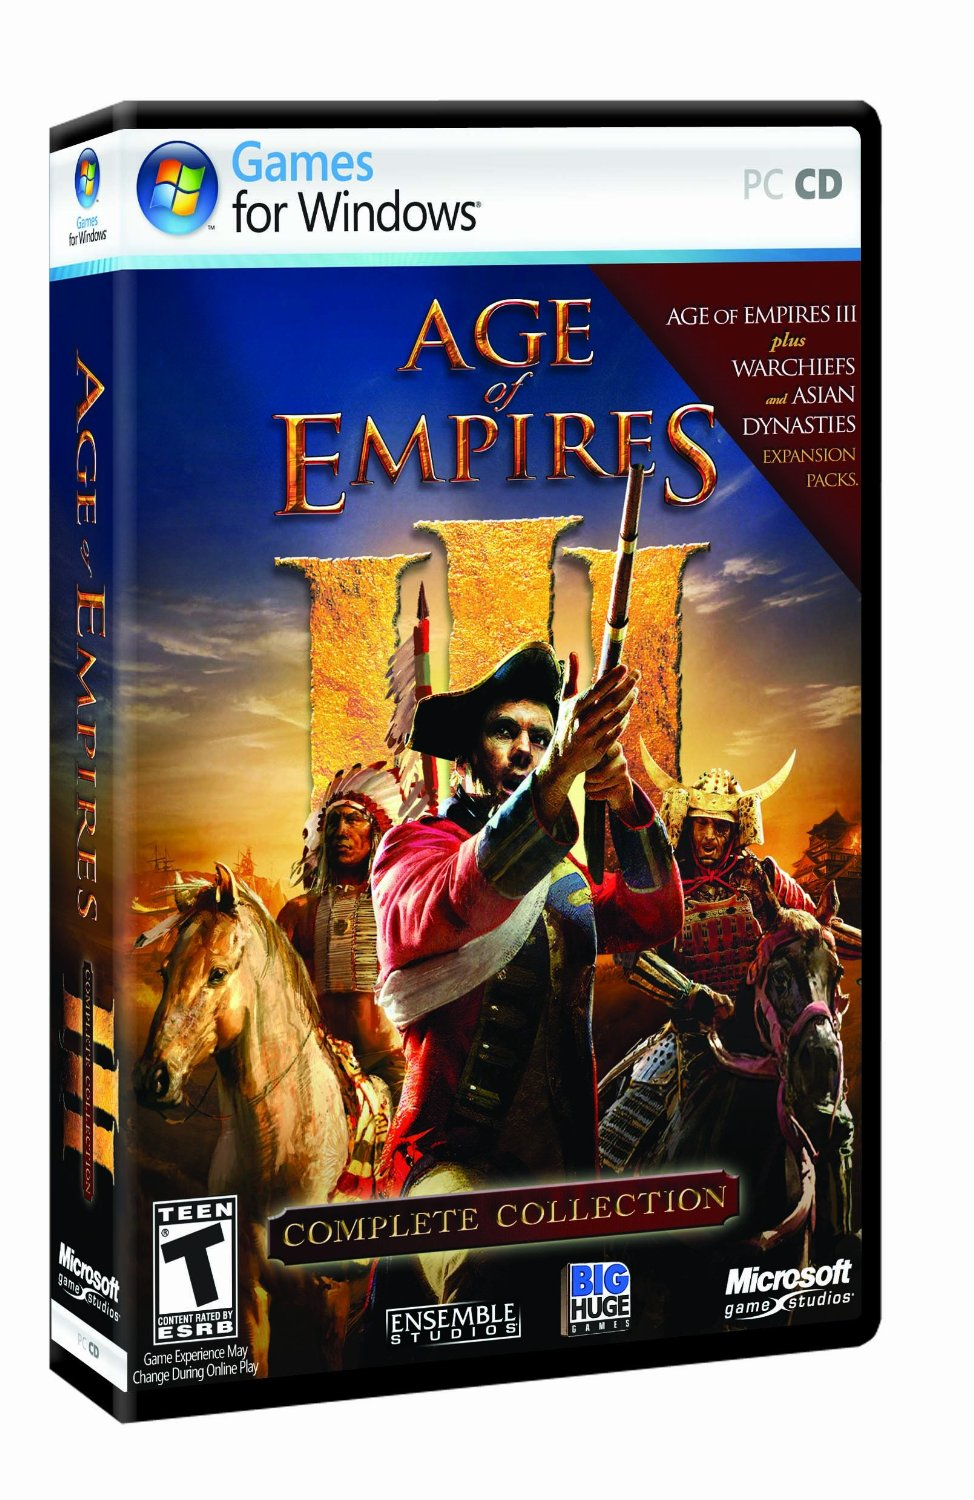 Best Strategy Games PC - Your vs Our All Time Classics Vote - PC